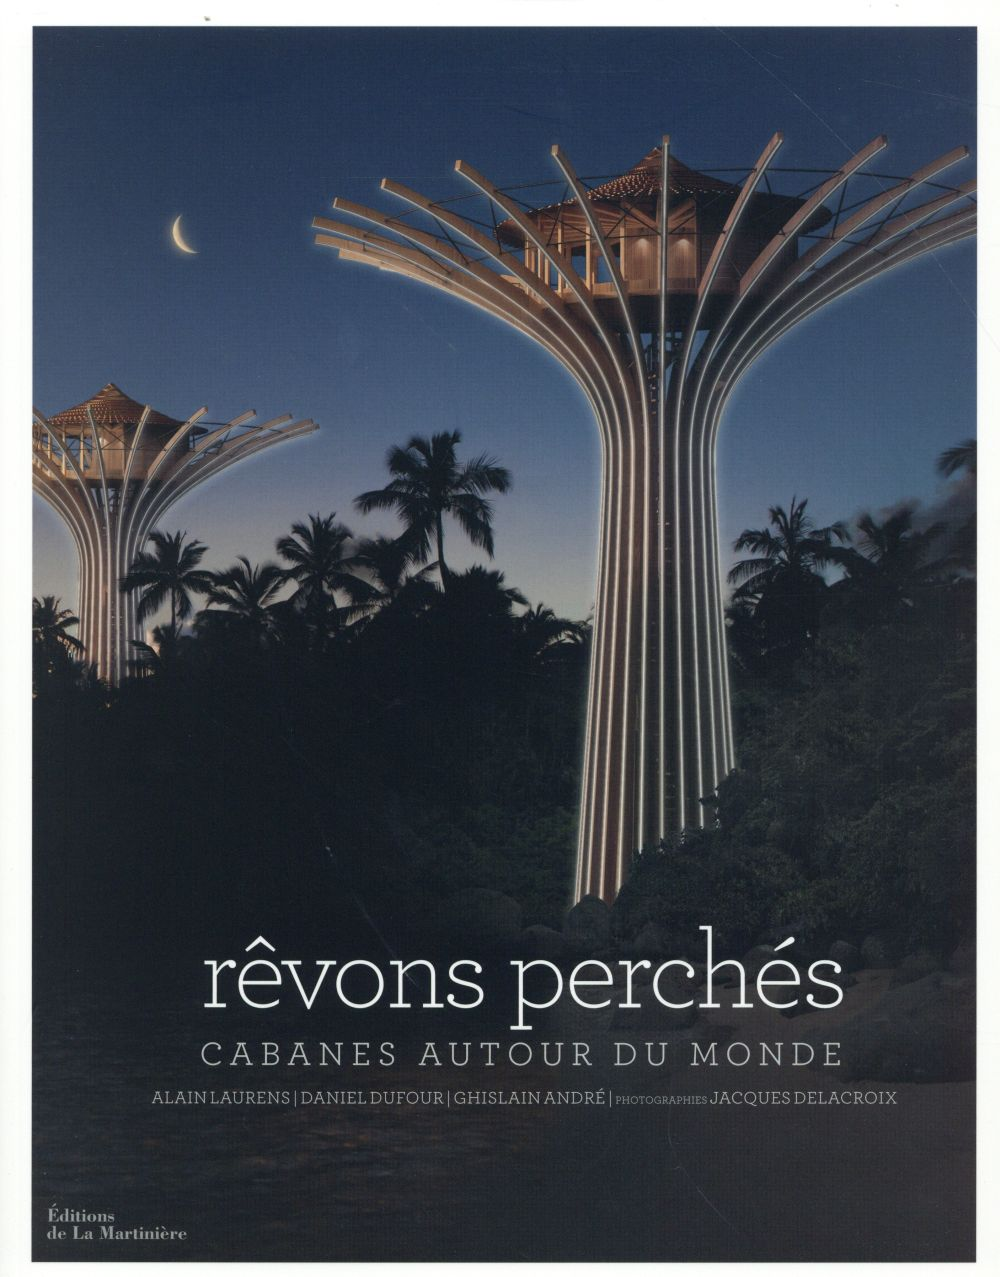 REVONS PERCHES